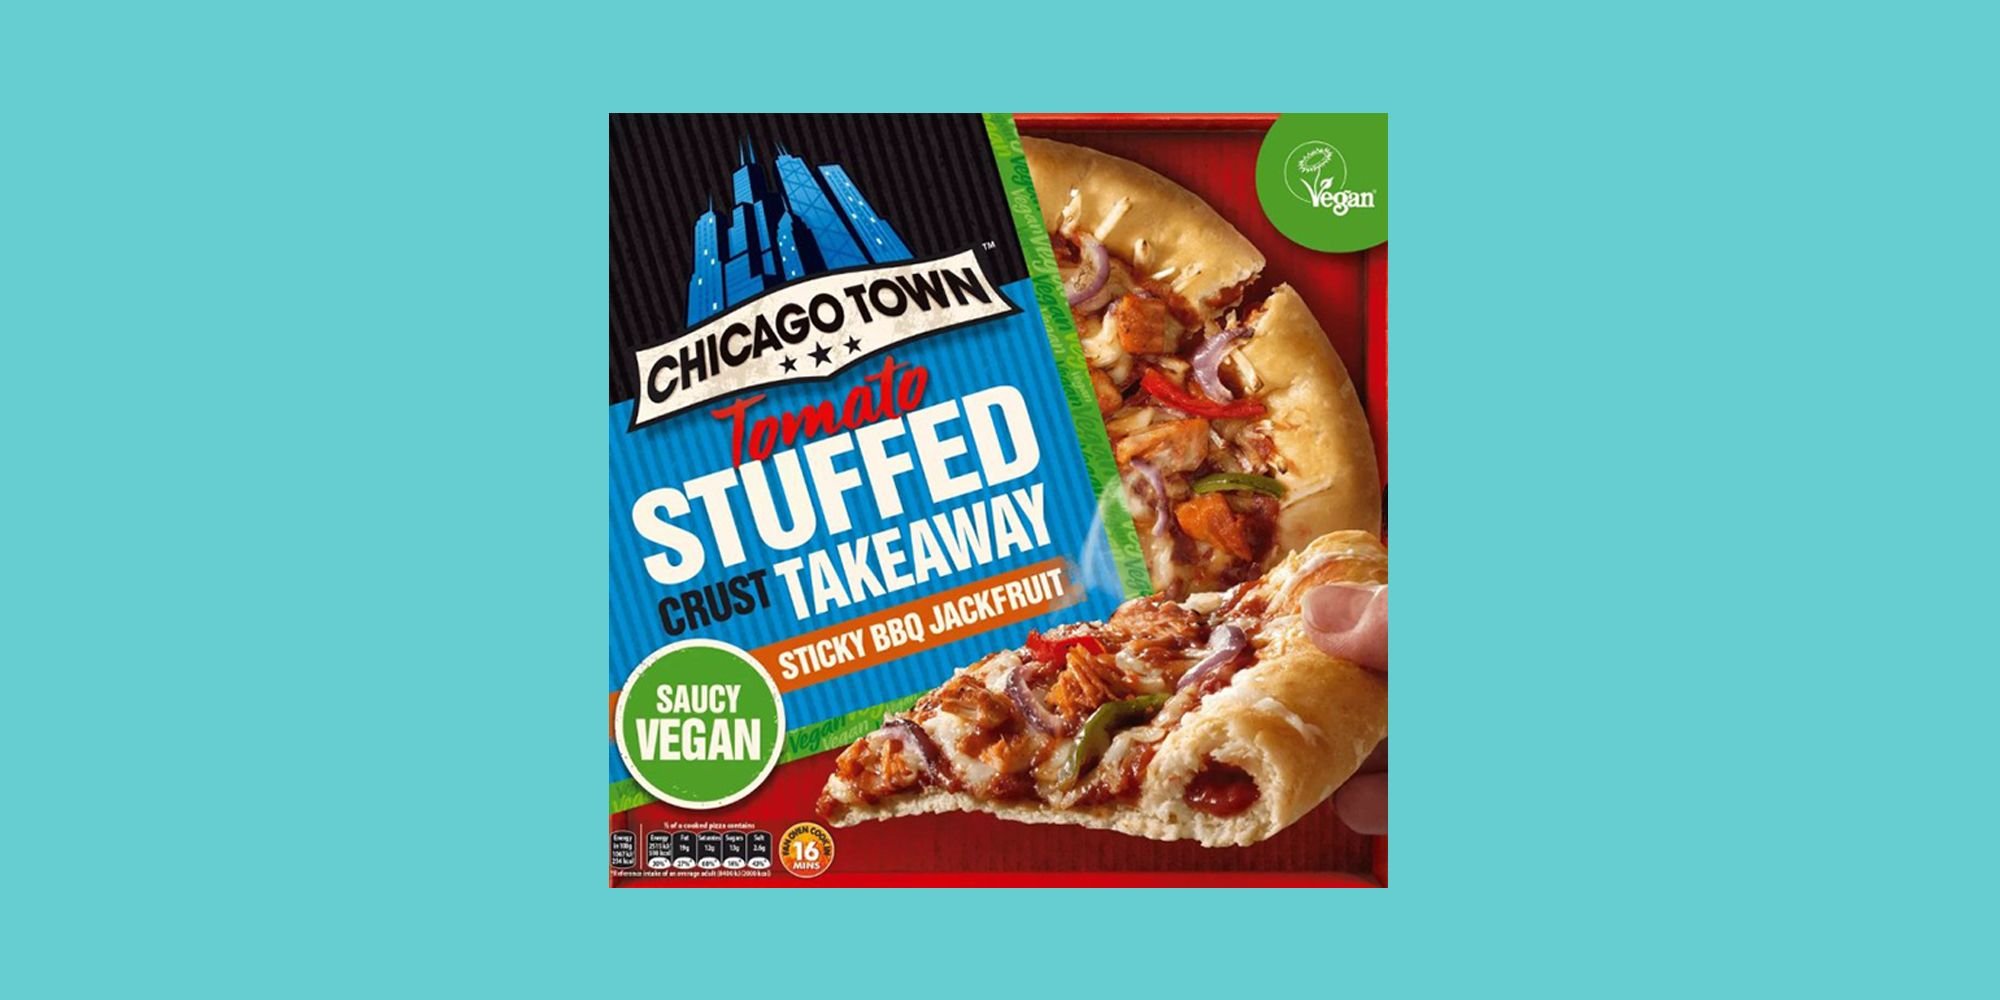 Chicago Towns First Vegan Stuffed Crust Pizza Is Launching